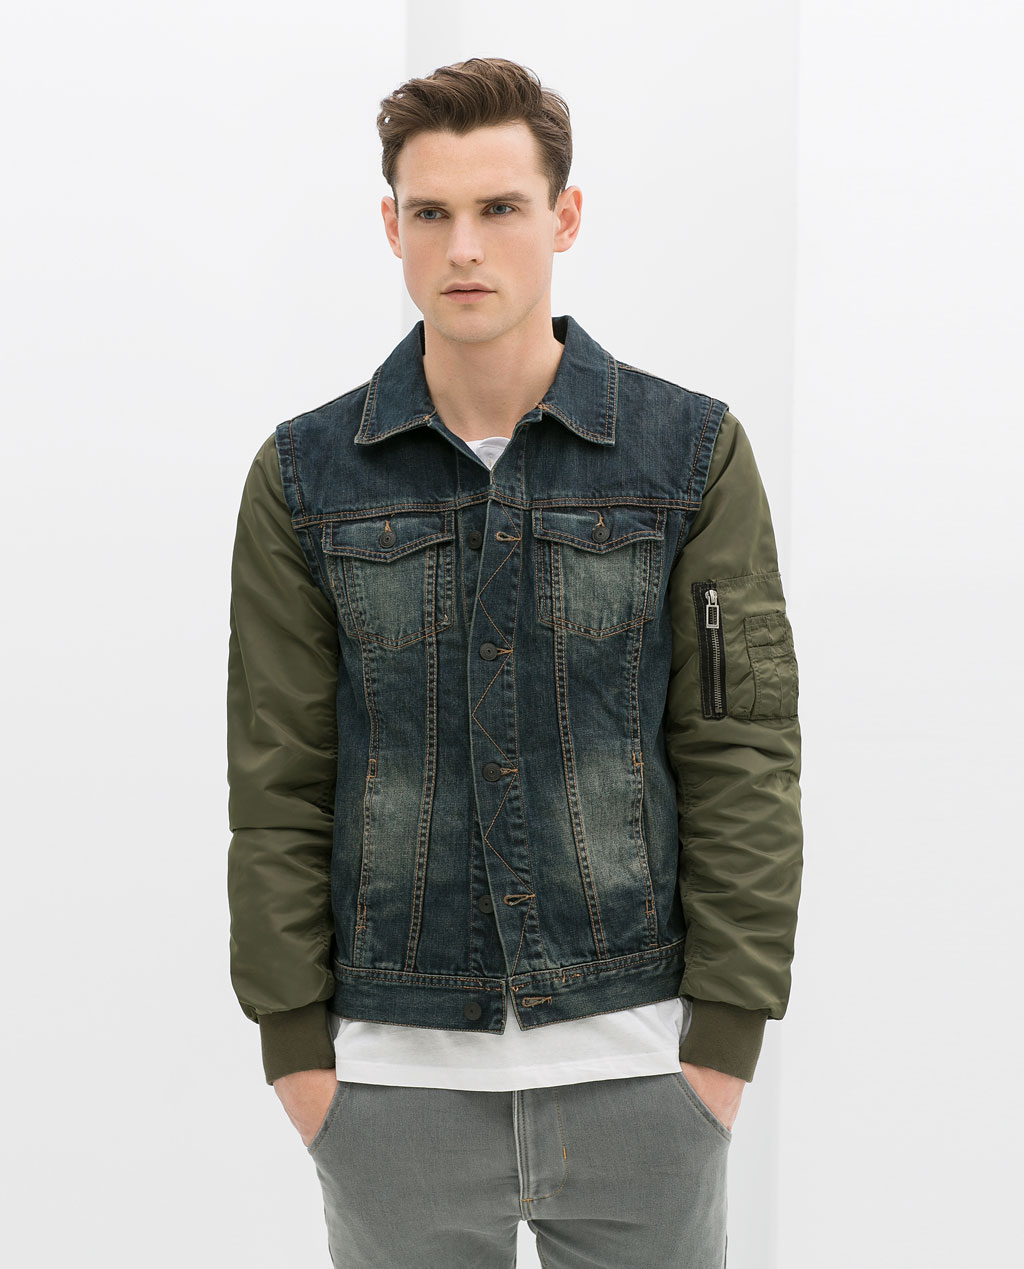 020abdbb 10 Summer Jackets For Men From Zara | The Fashion Supernova